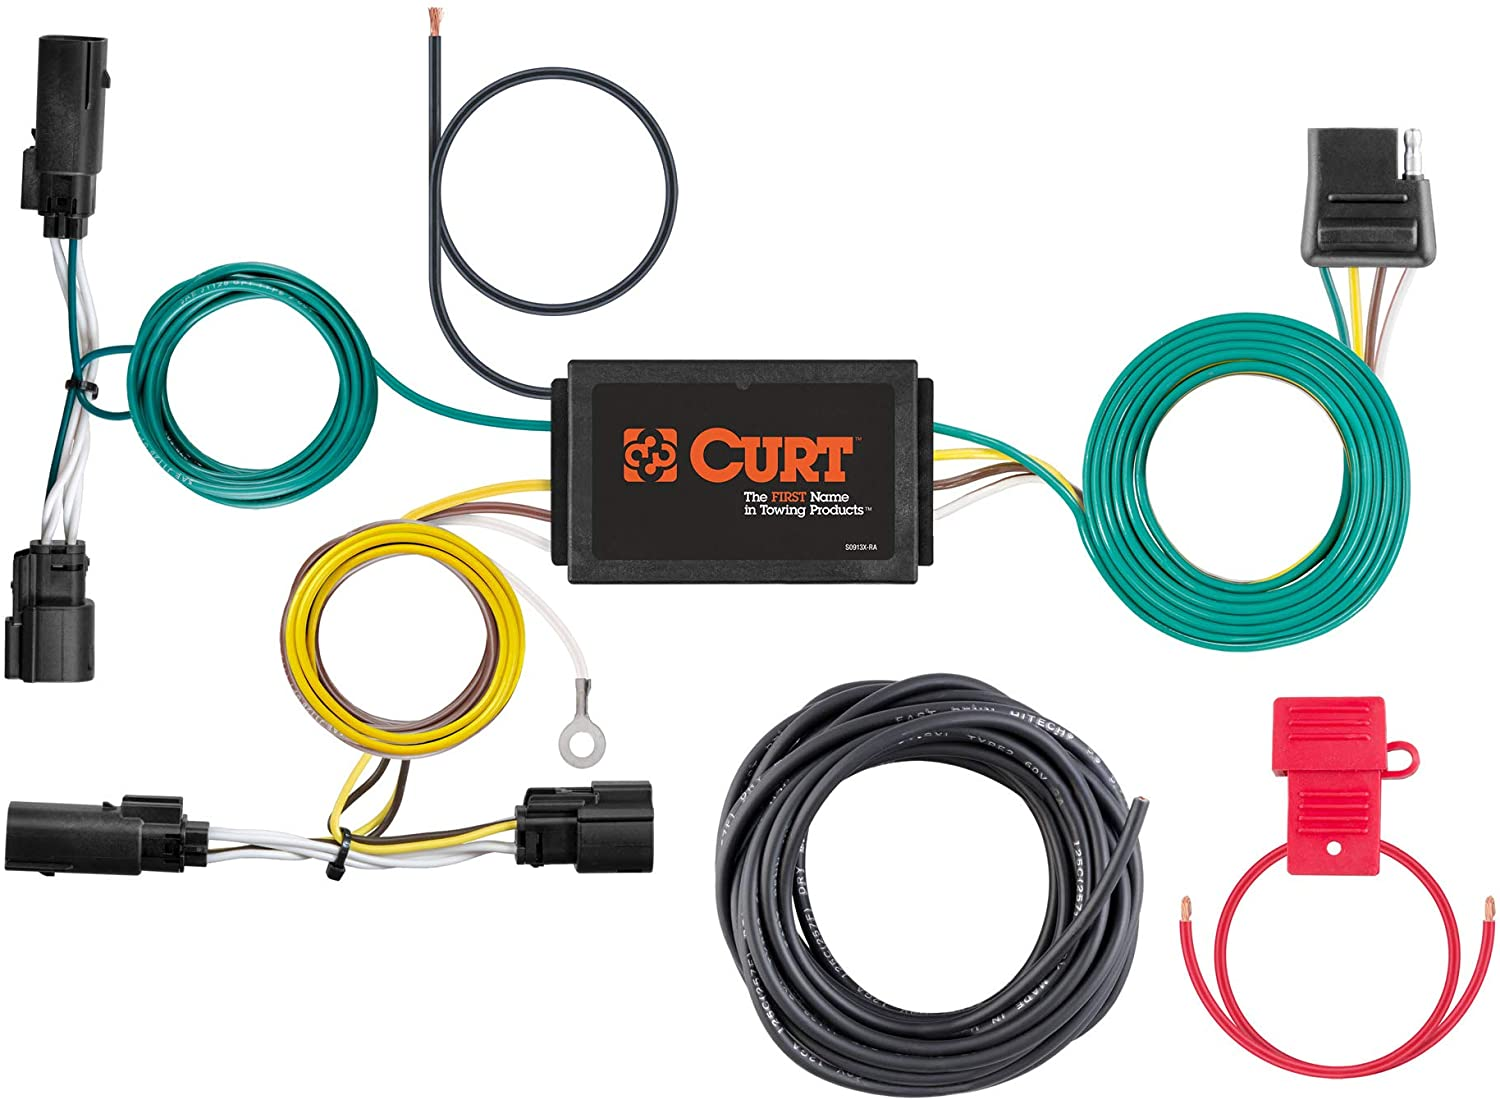 CURT 400 Vehicle Side Custom 40 Pin Trailer Wiring Harness, Select Ford  Escape , Black